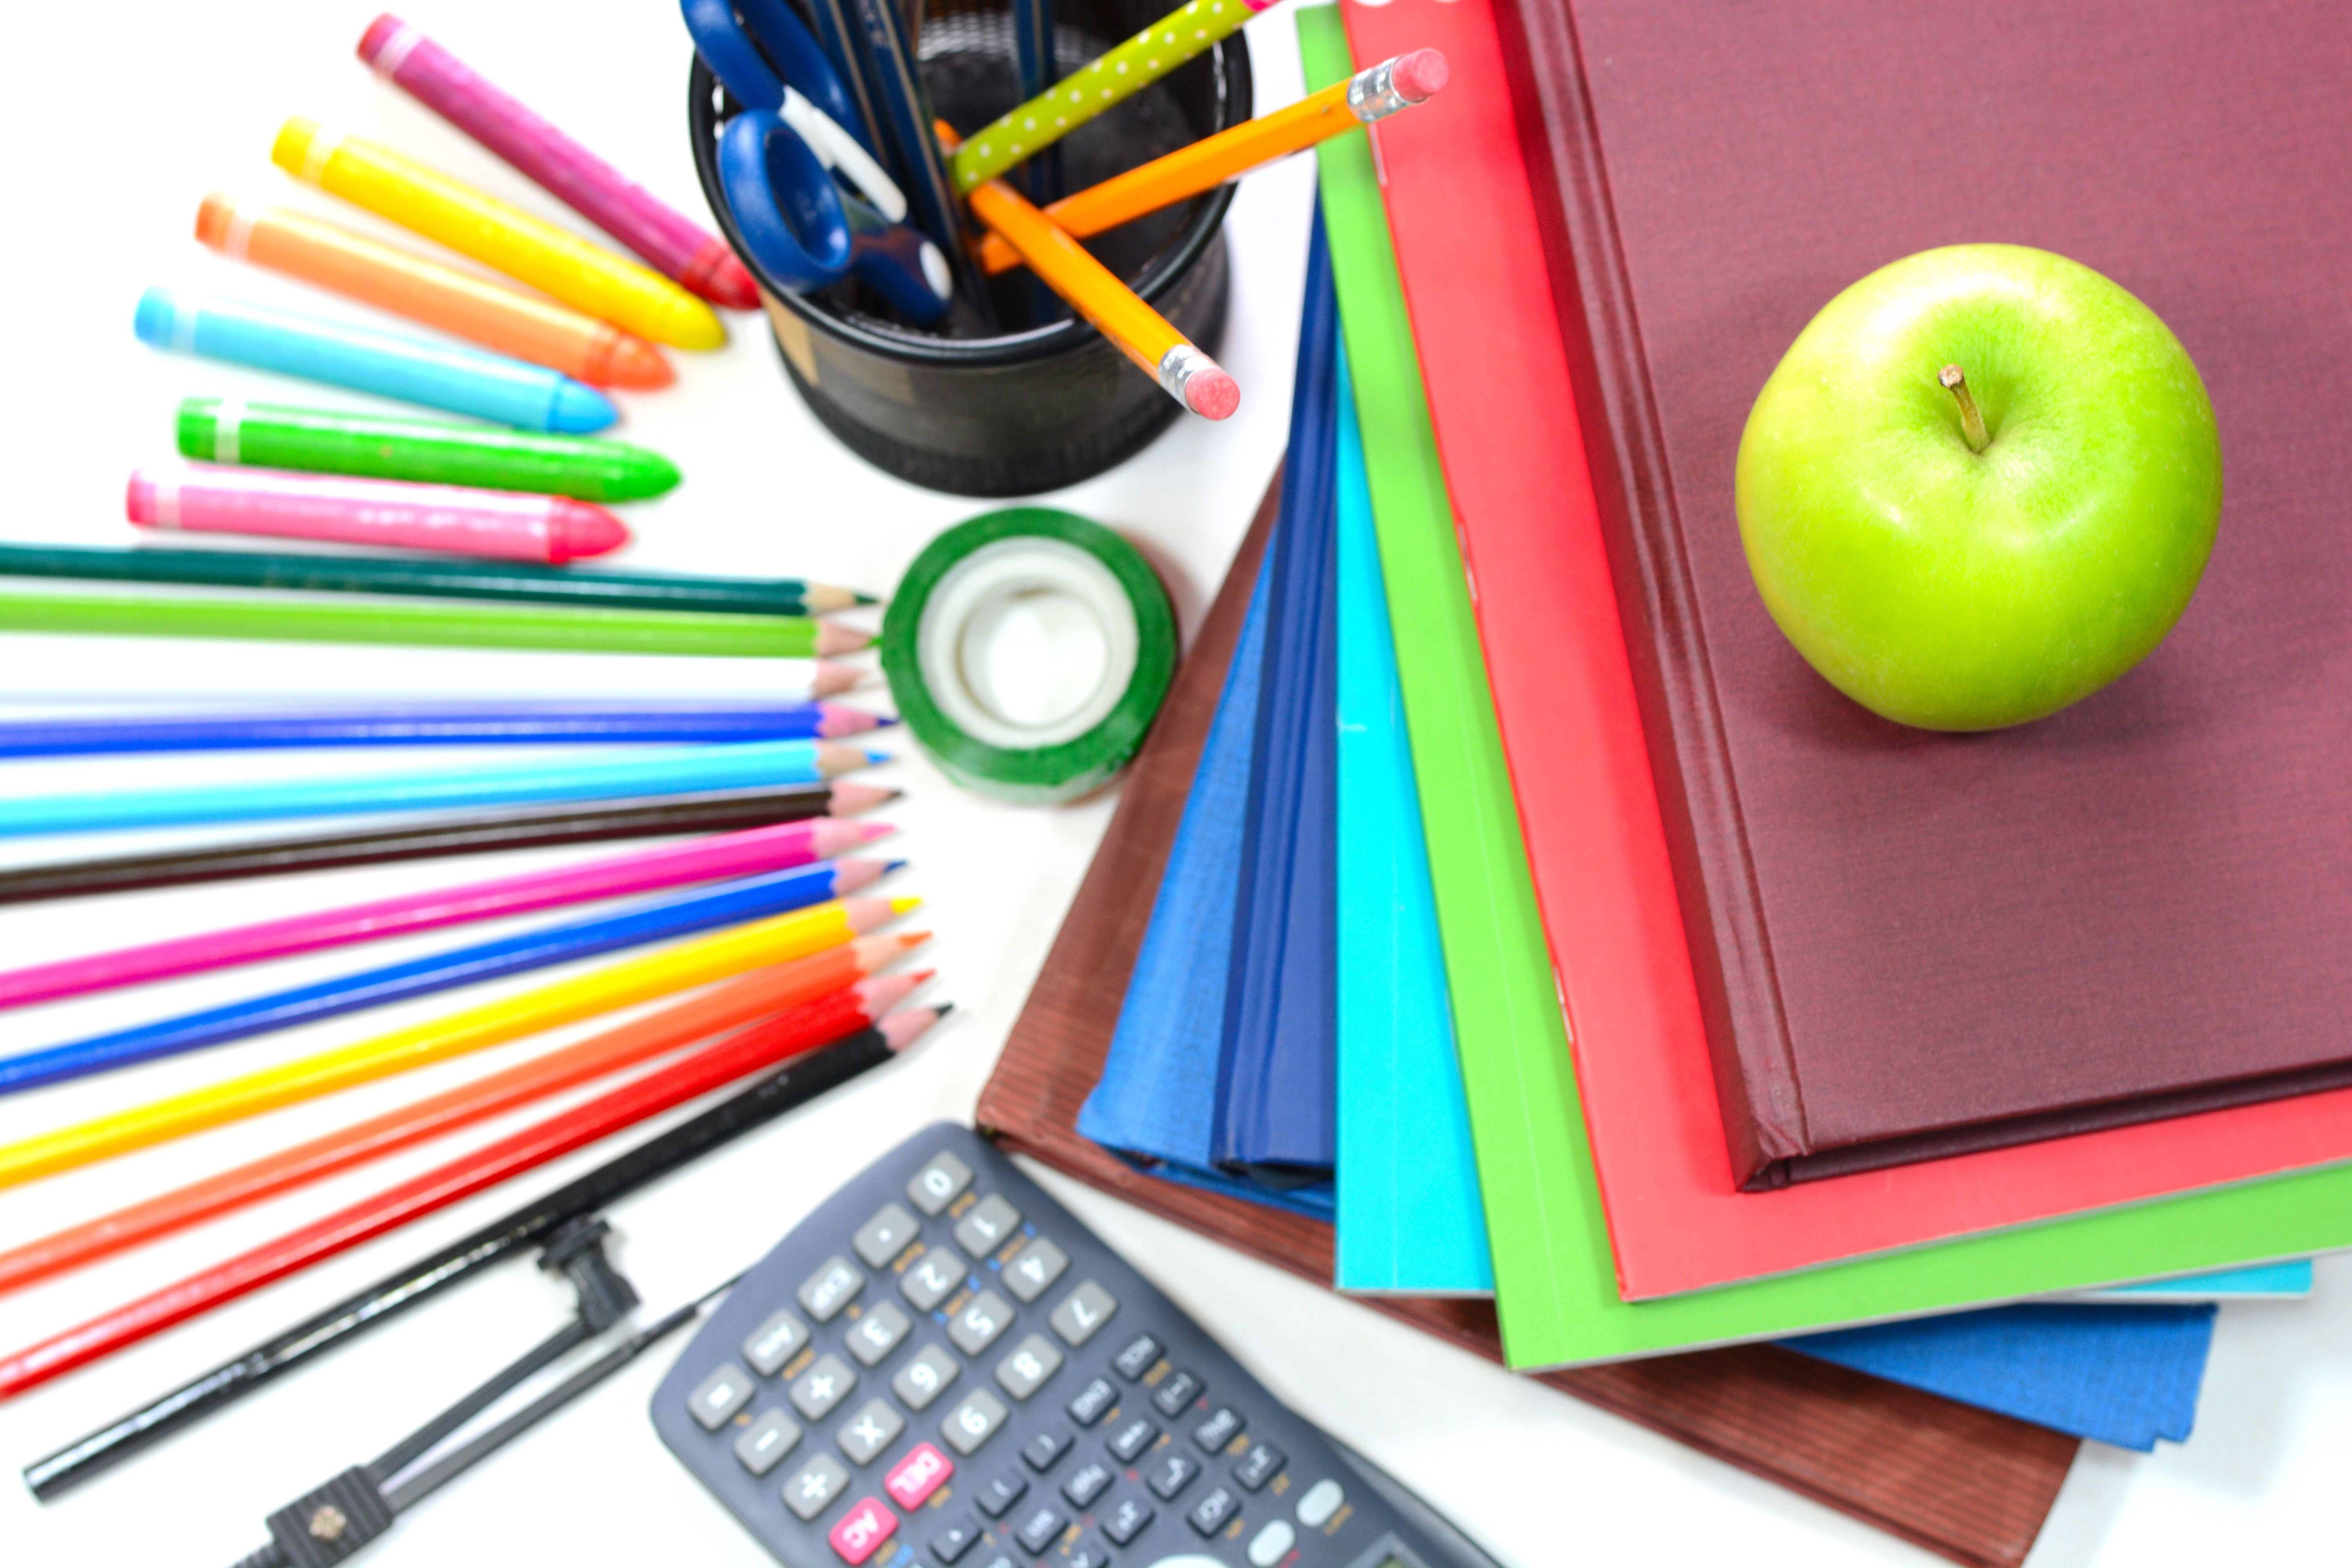 colored pencils, calculator, and books on tabletop